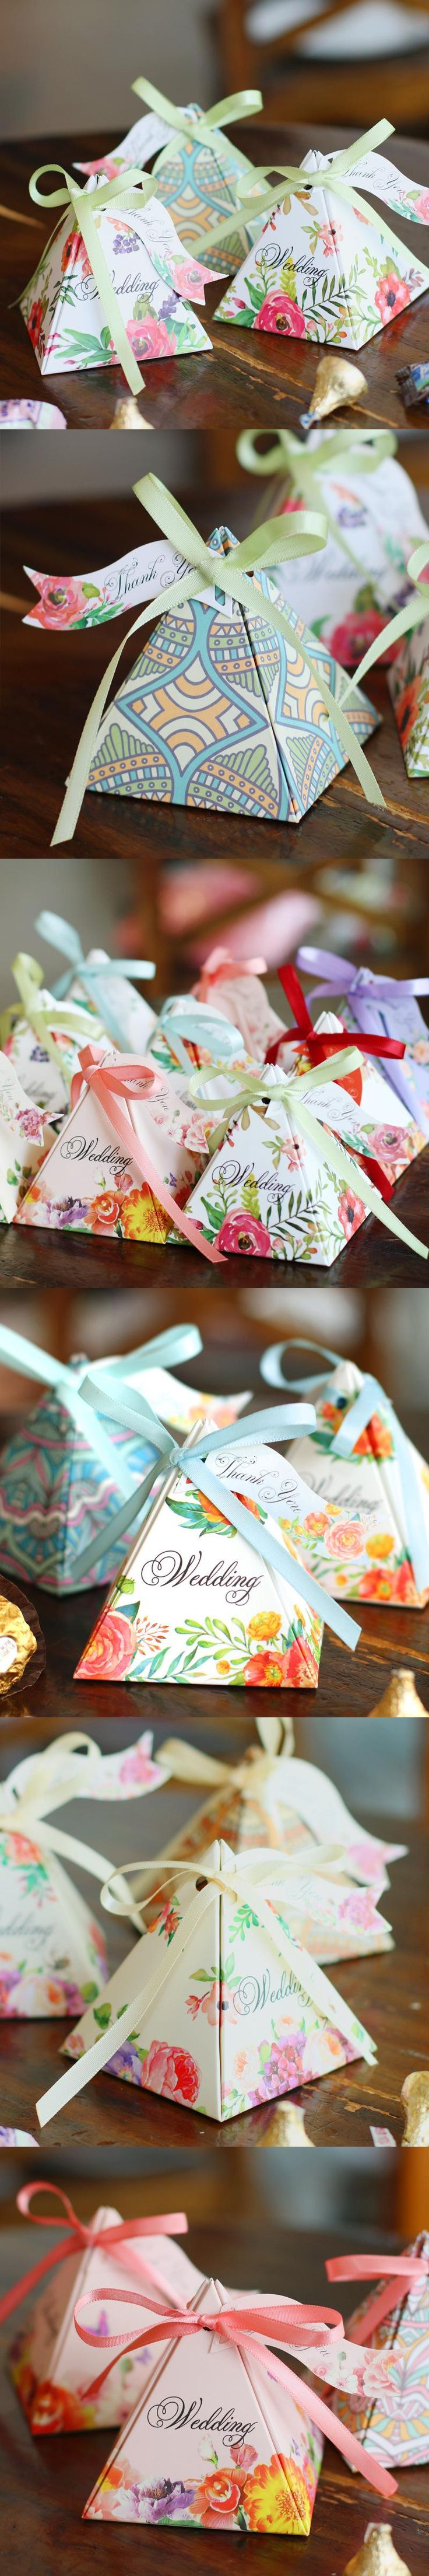 wedding shower thank you note for gift card%0A triangular flower ribbon wedding candy box favor box supplies Doublefaced  Gifts Box With   Thank You   Cards  u     Ribbons